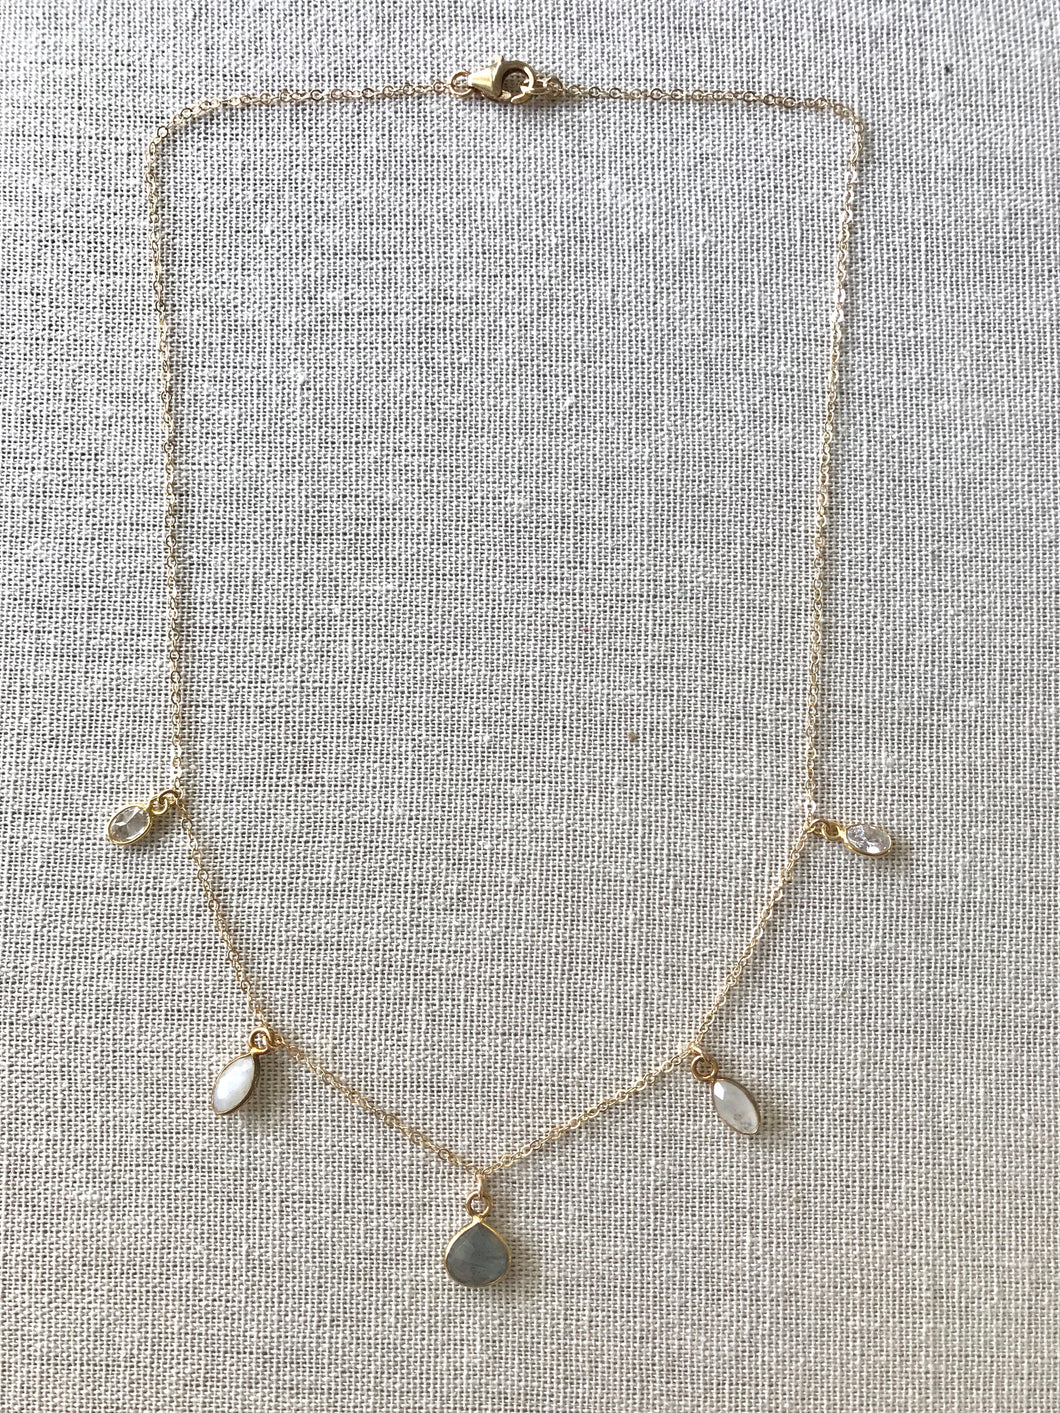 The Dainty Collection ~ Moonstone Necklace